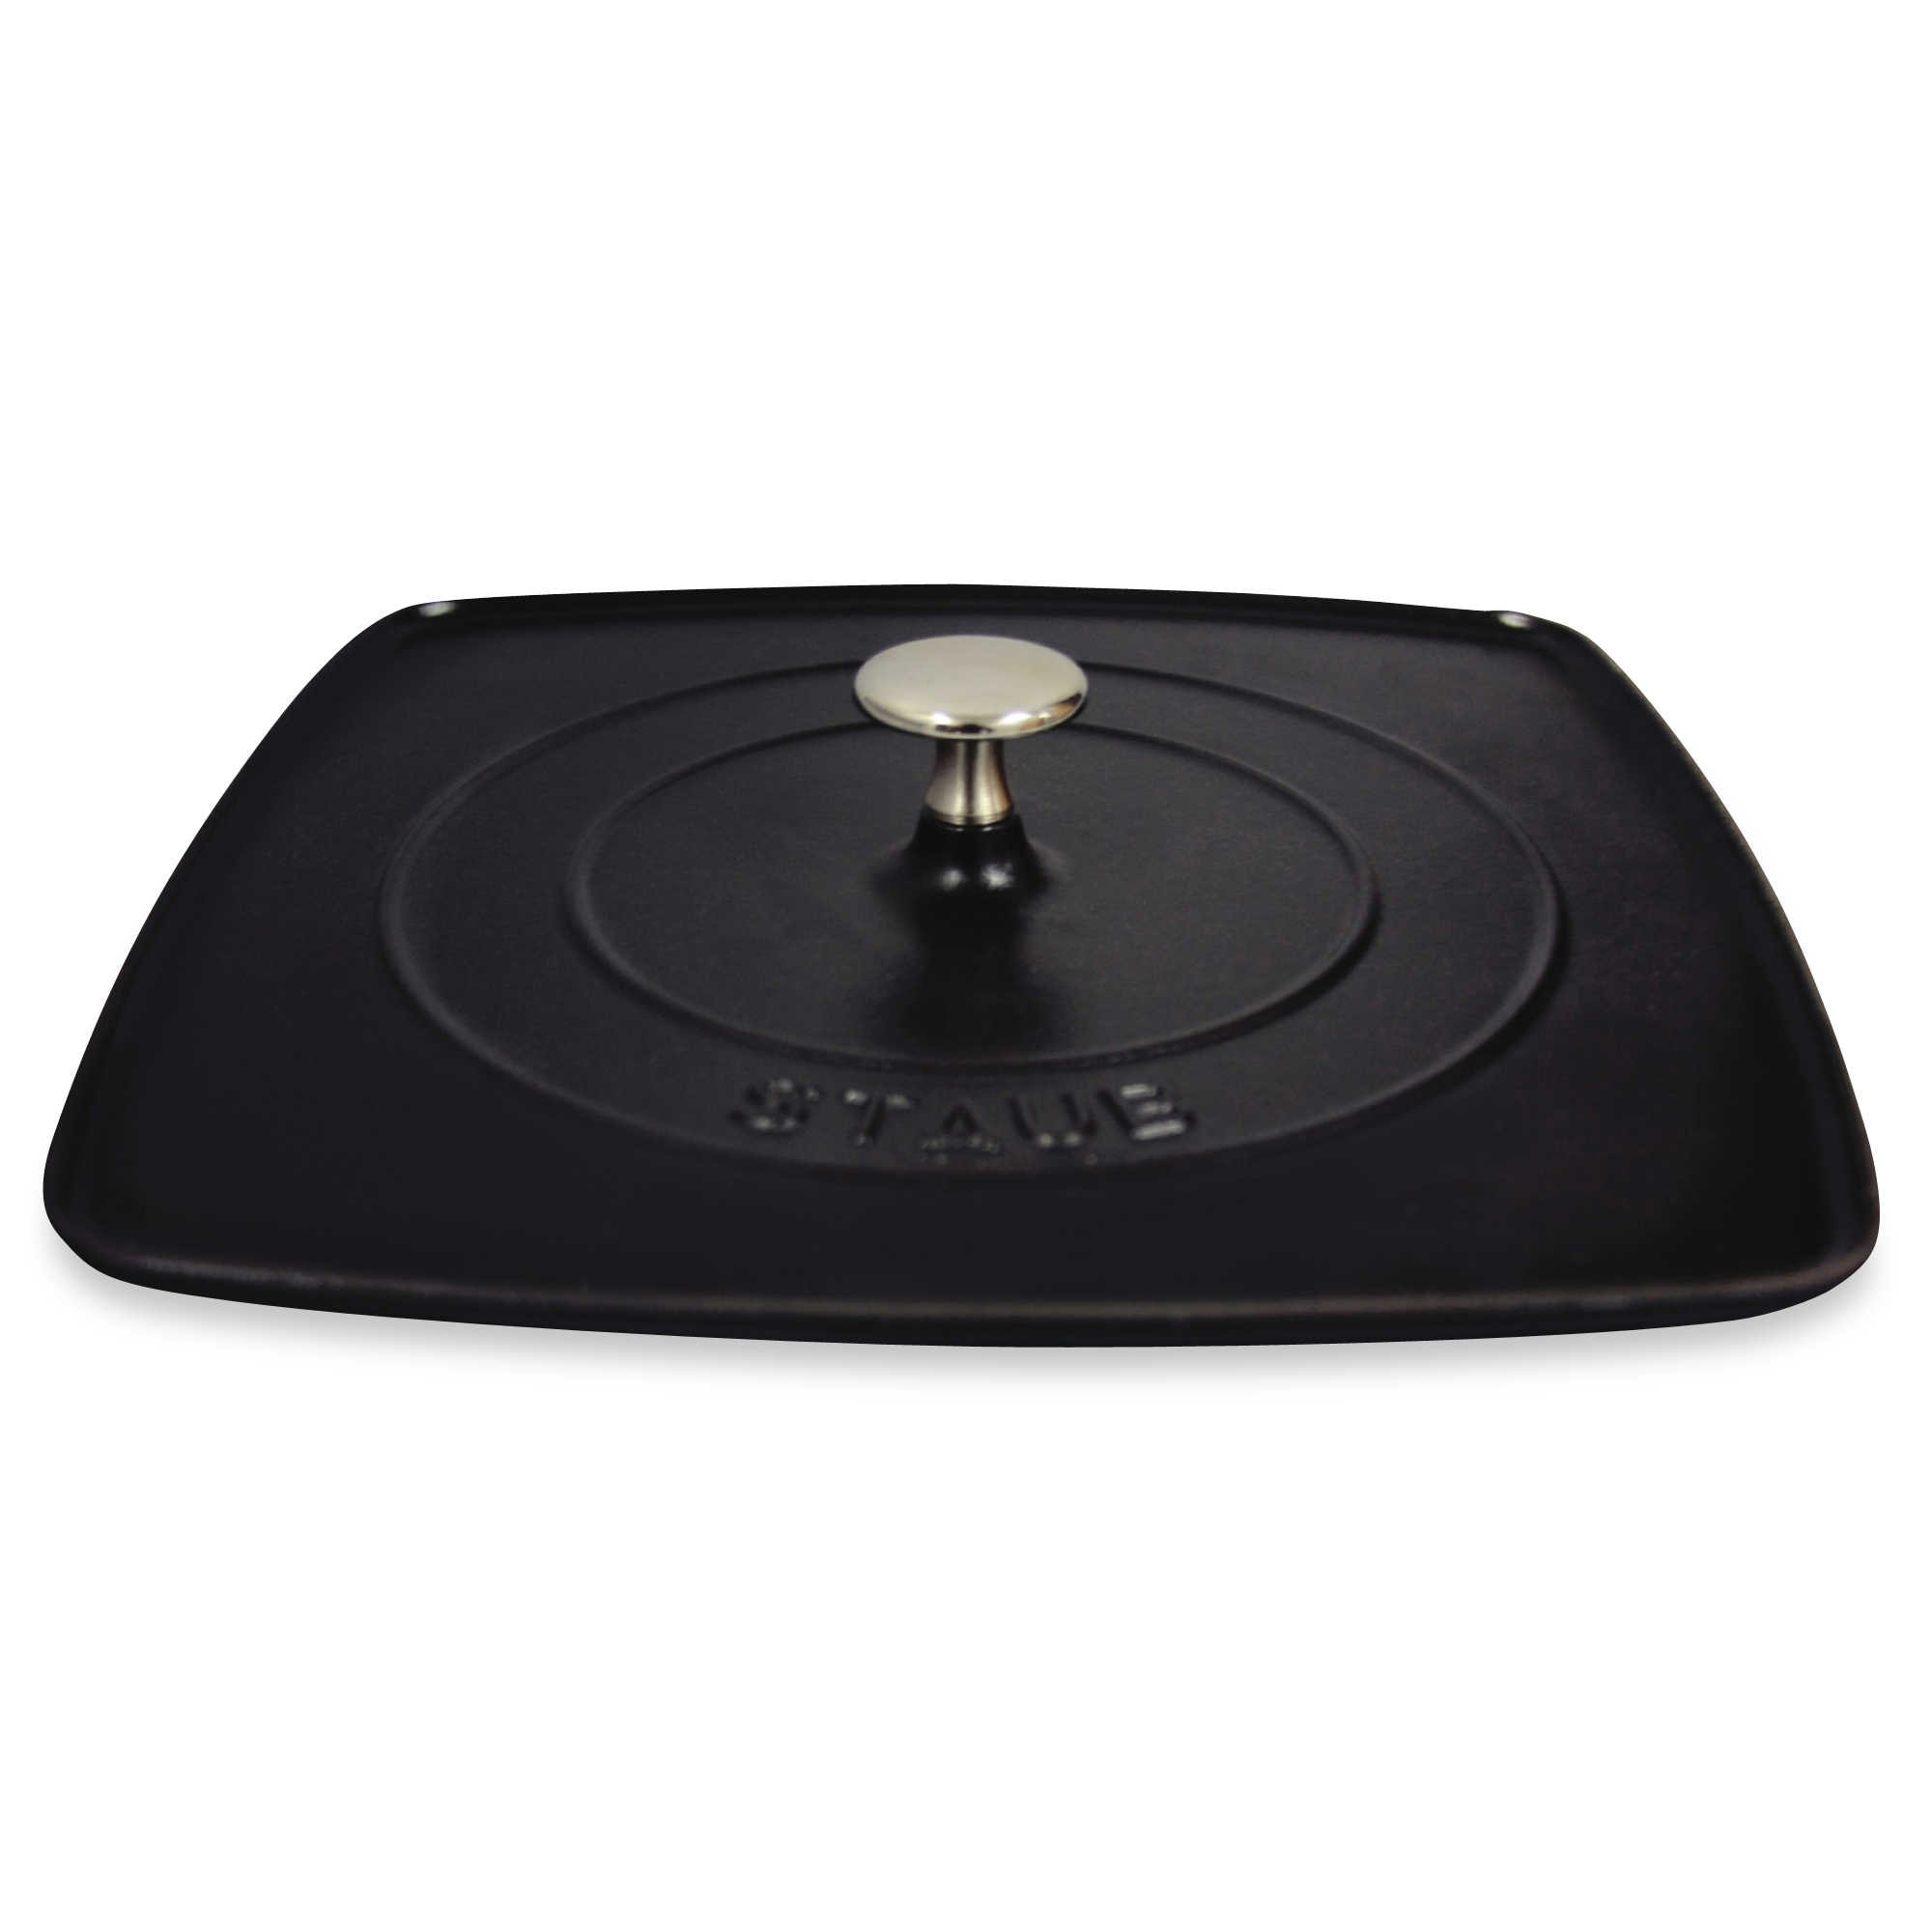 Grill Press, 12-inch Cast Iron Highly Chip-Resistant - Retains and Transfers Heat Evenly